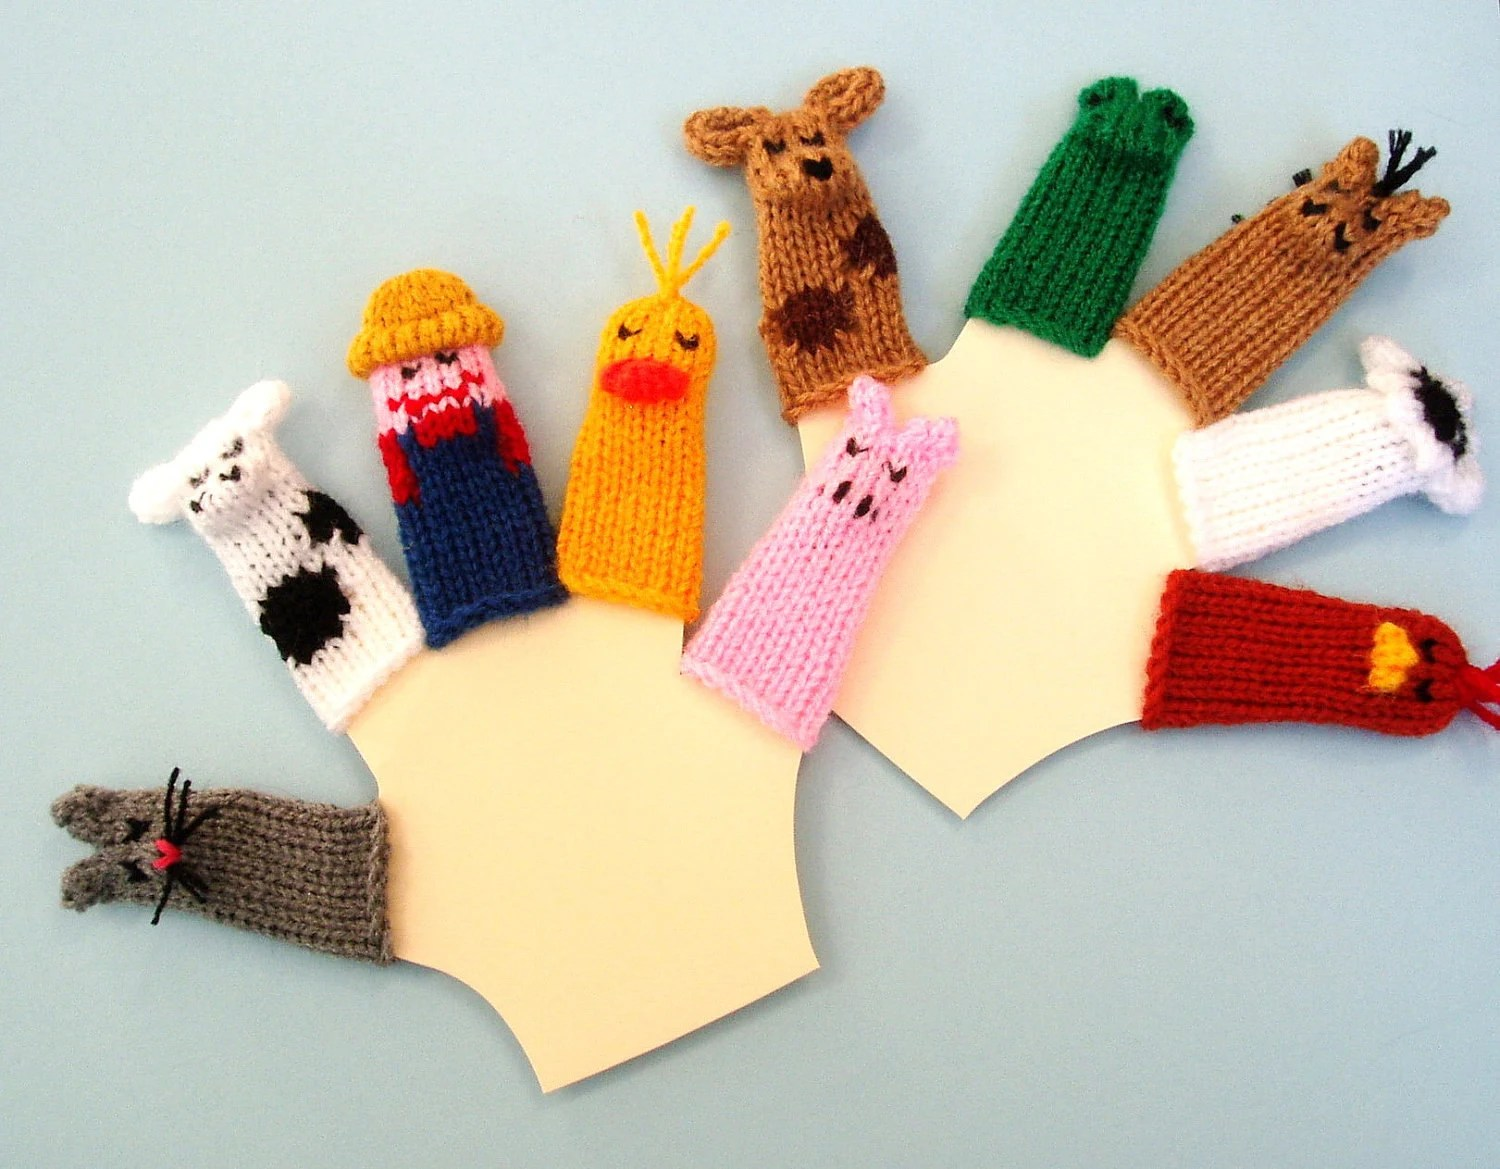 Deluxe Old McDonald Finger Puppet Set (Includes Old McDonald, Cat, Cow, Duck, Pig, Dog, Frog, Horse, Sheep. and Rooster.)